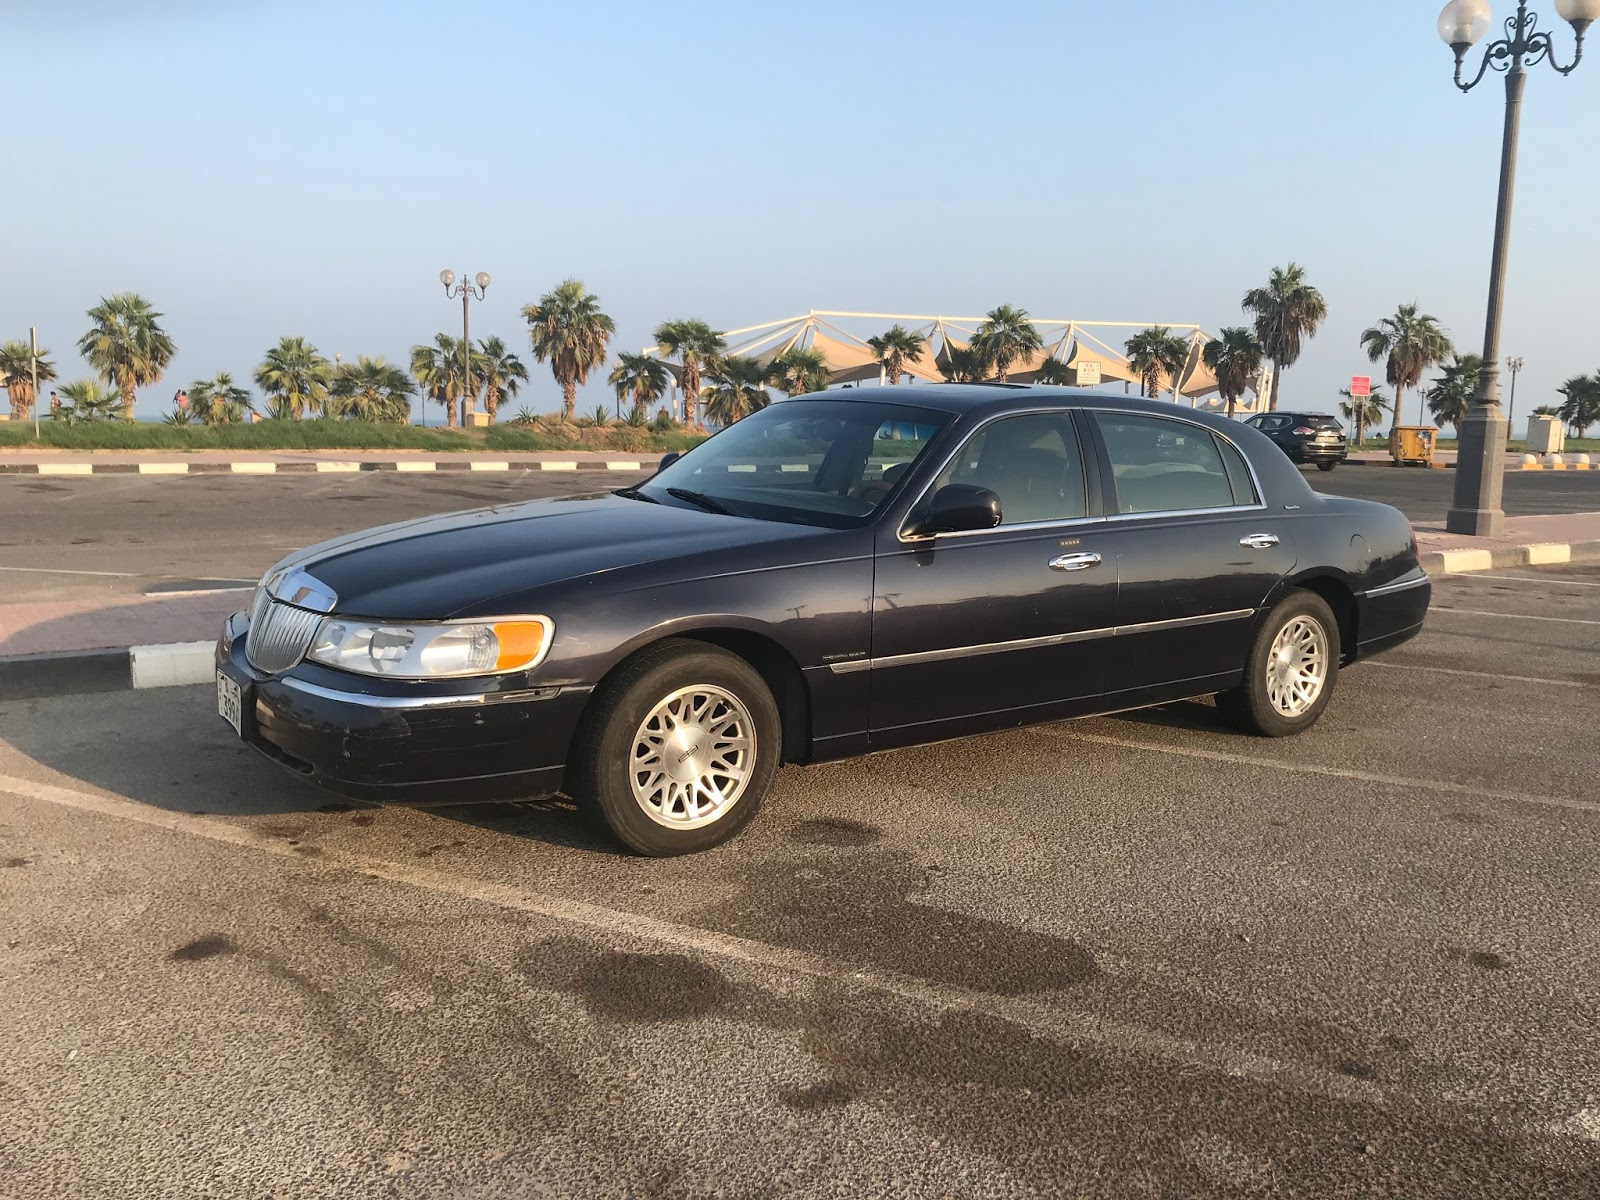 small resolution of so in the spirit of the blues i just acquired my own bluesmobile a 1999 lincoln town car signature edition in fantastic condition